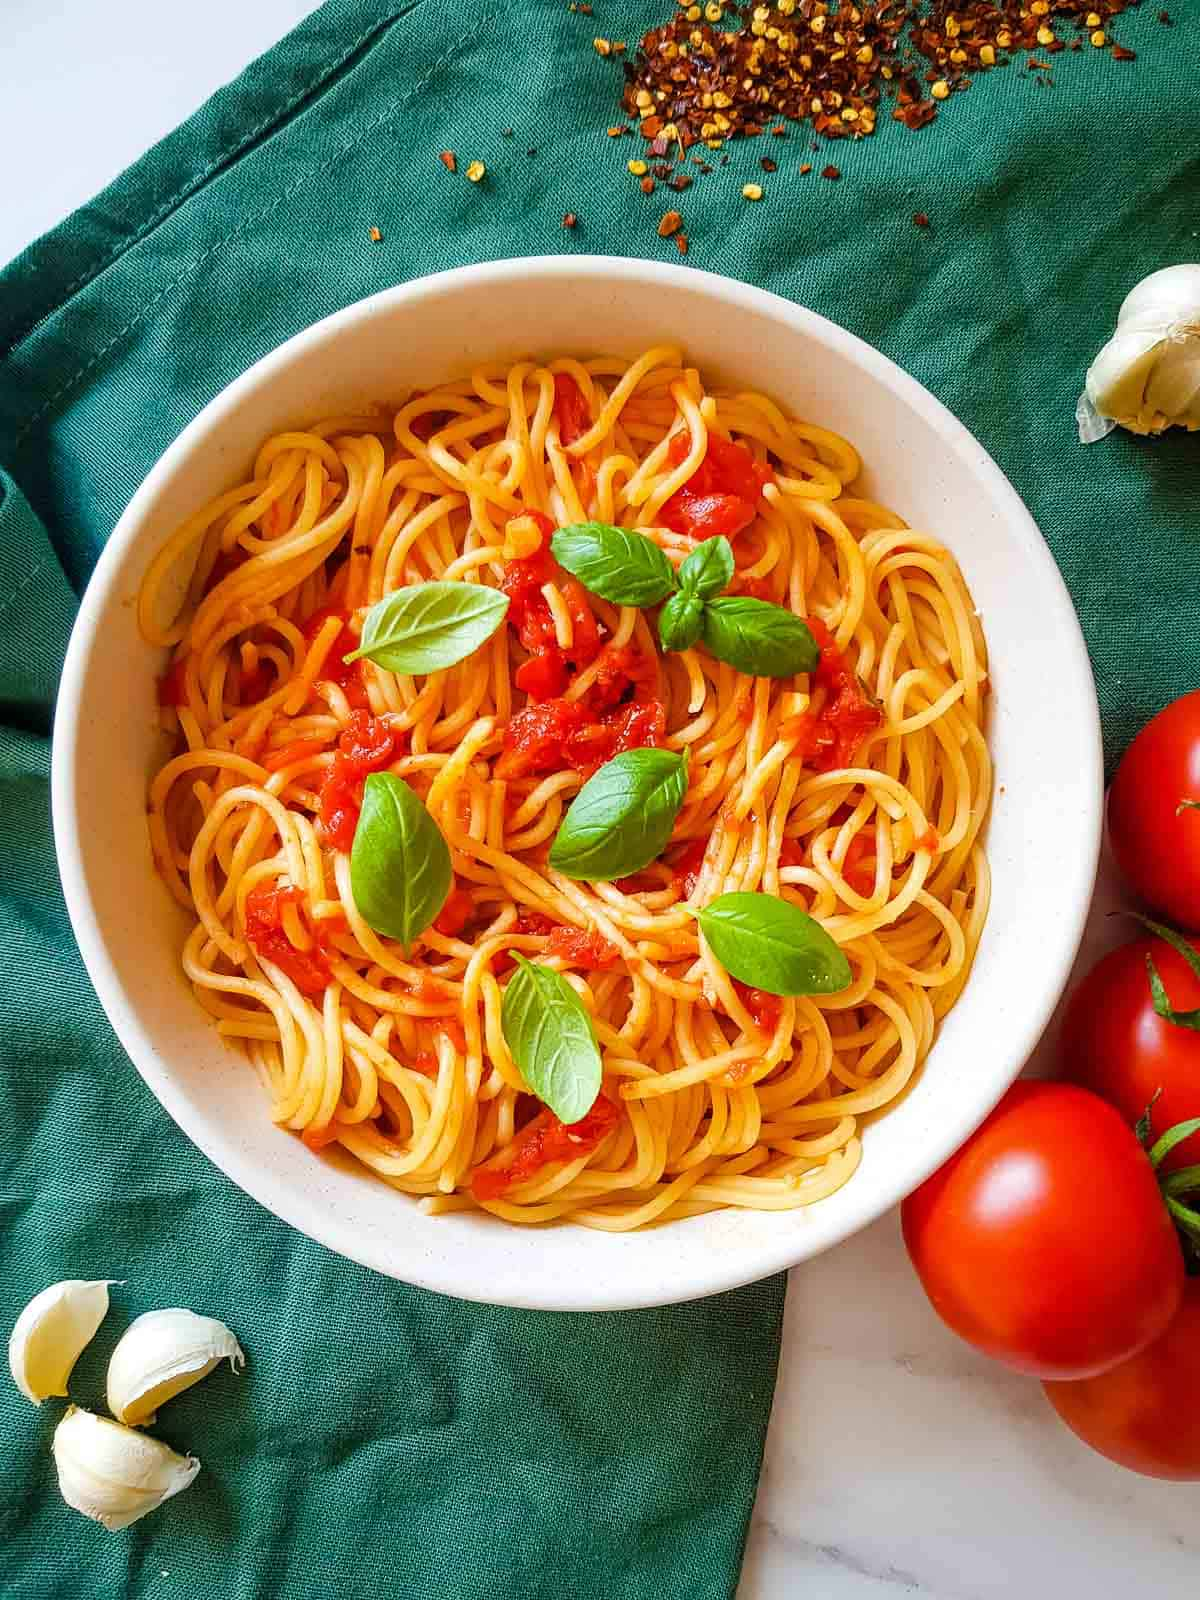 Arrabbiata spaghetti in a bowl with basil leaves on top.